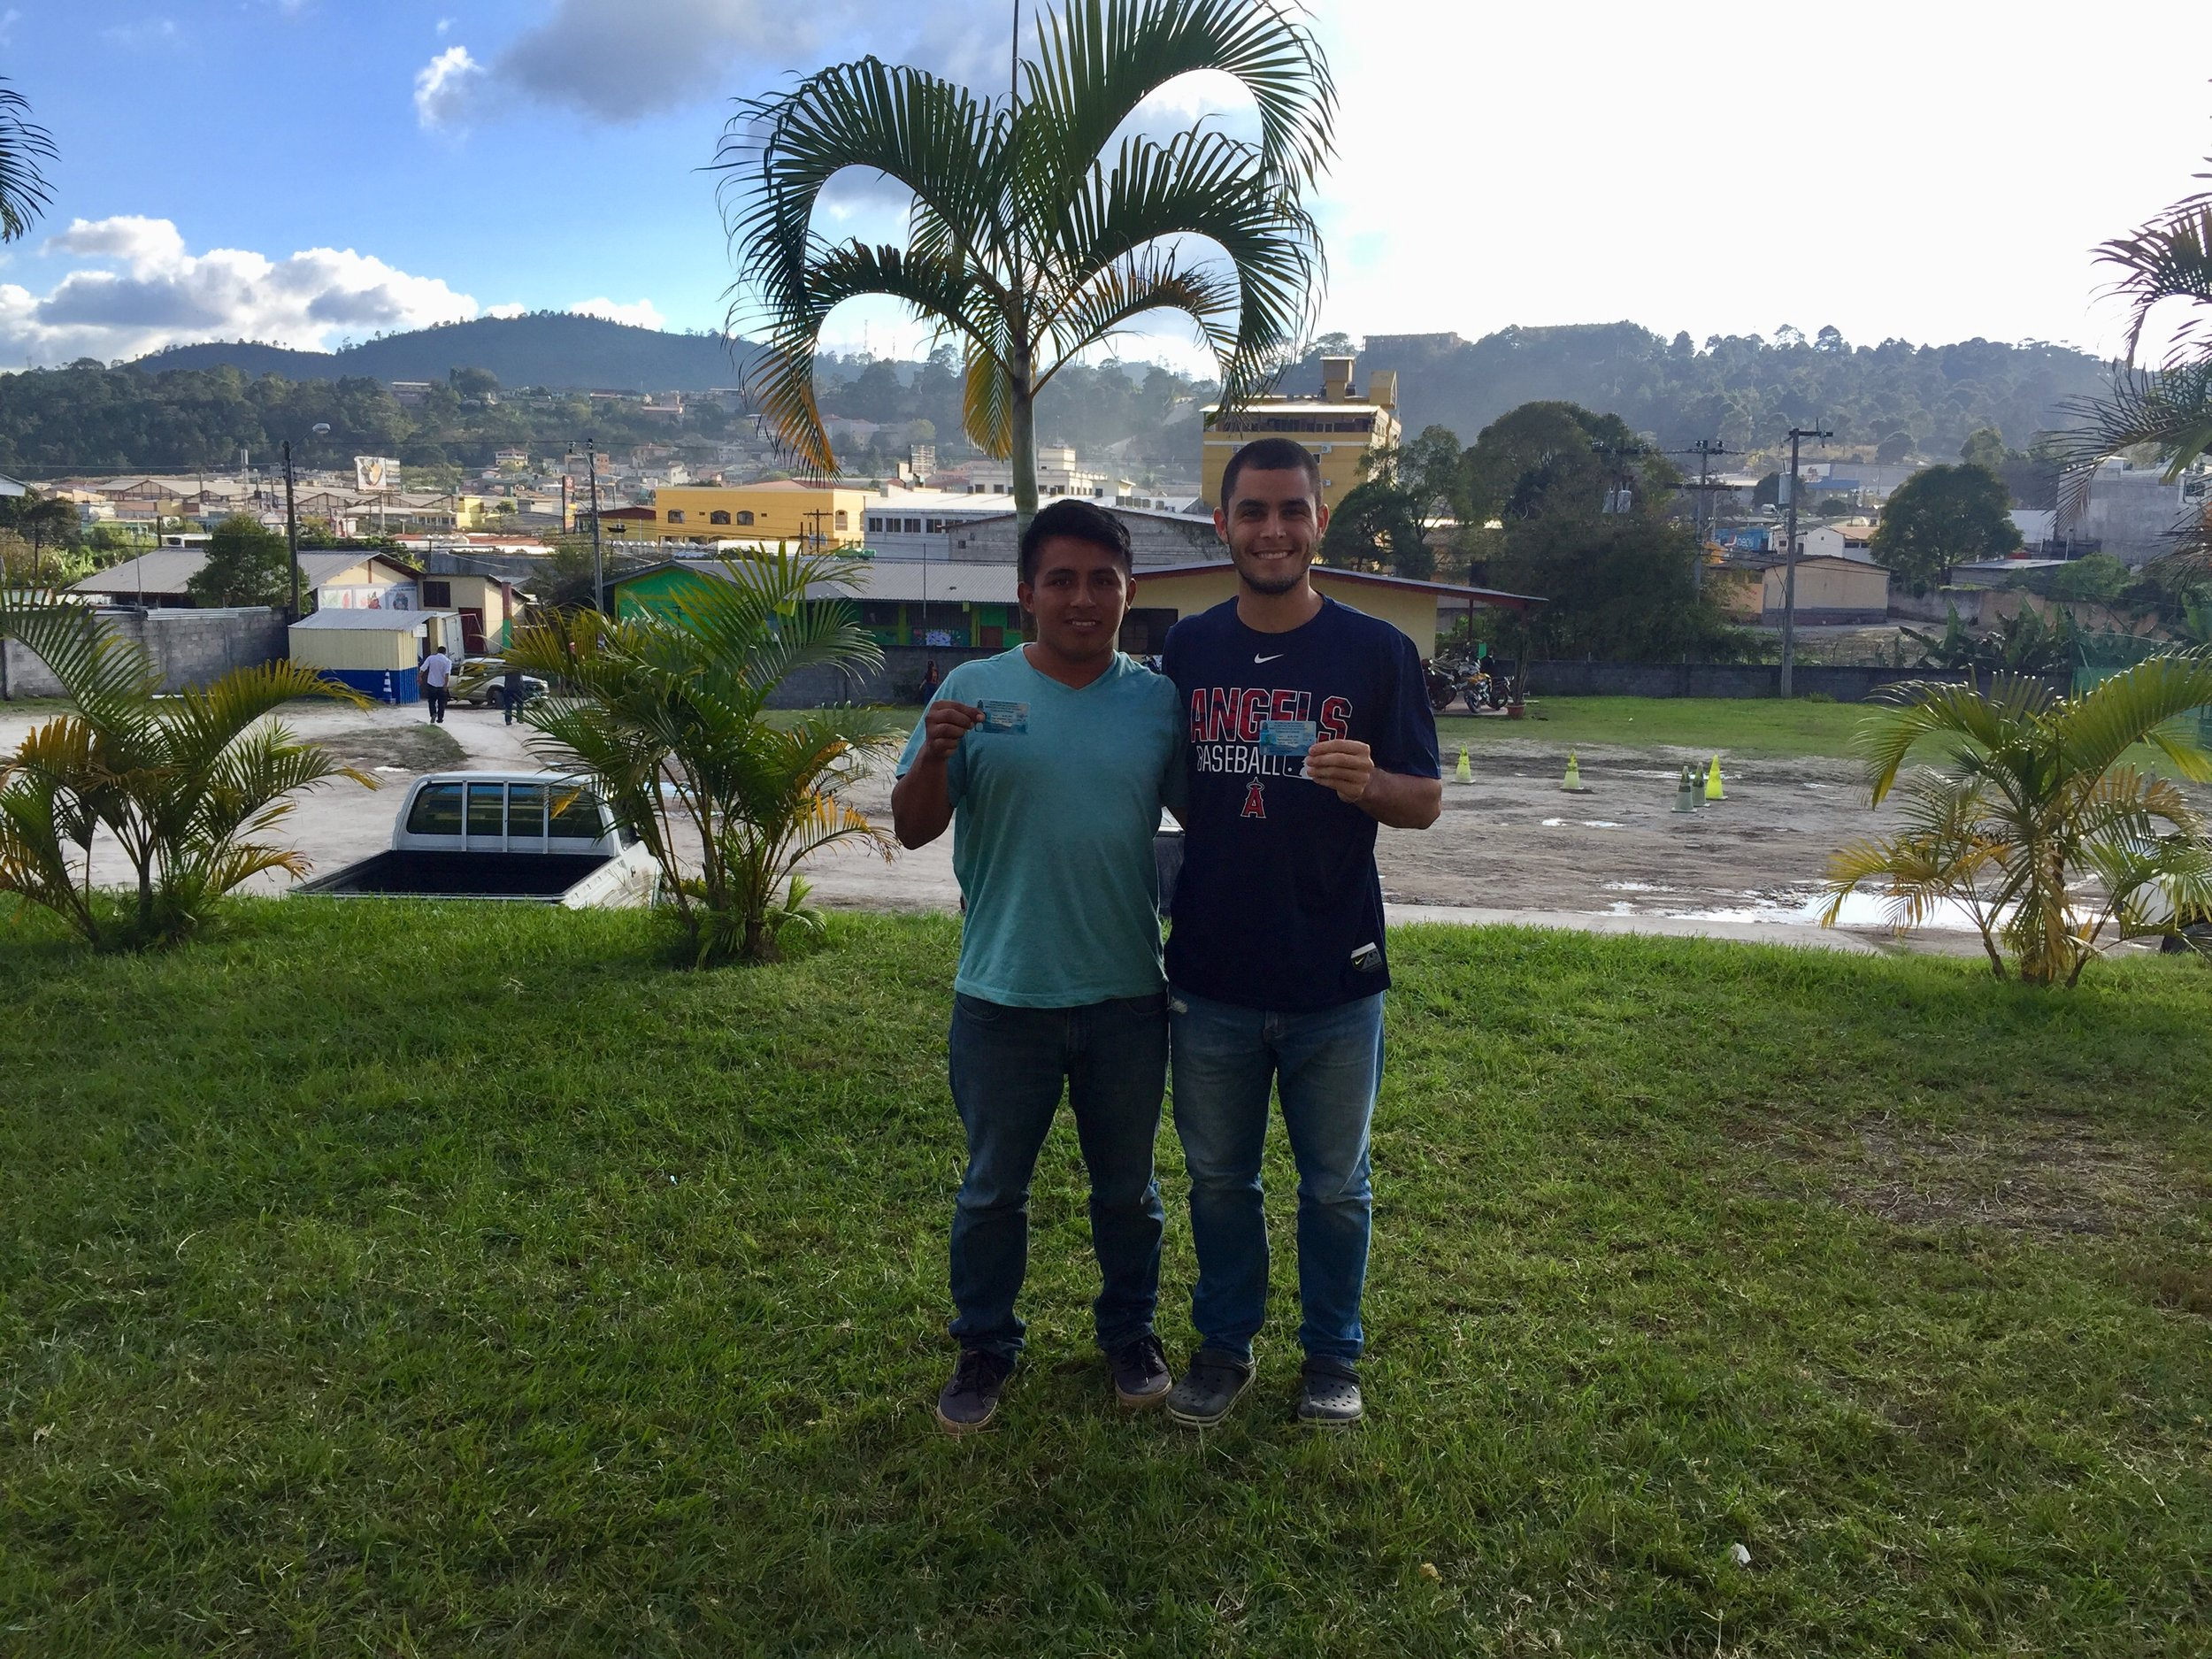 Mr. Zack and one of our 'jovenes' pose for a photo after both of them passed their written and manual driving test in Santa Rosa. The two spent many hours practicing driving, parking, and studying before finally taking the test and getting their Honduran driver's license.